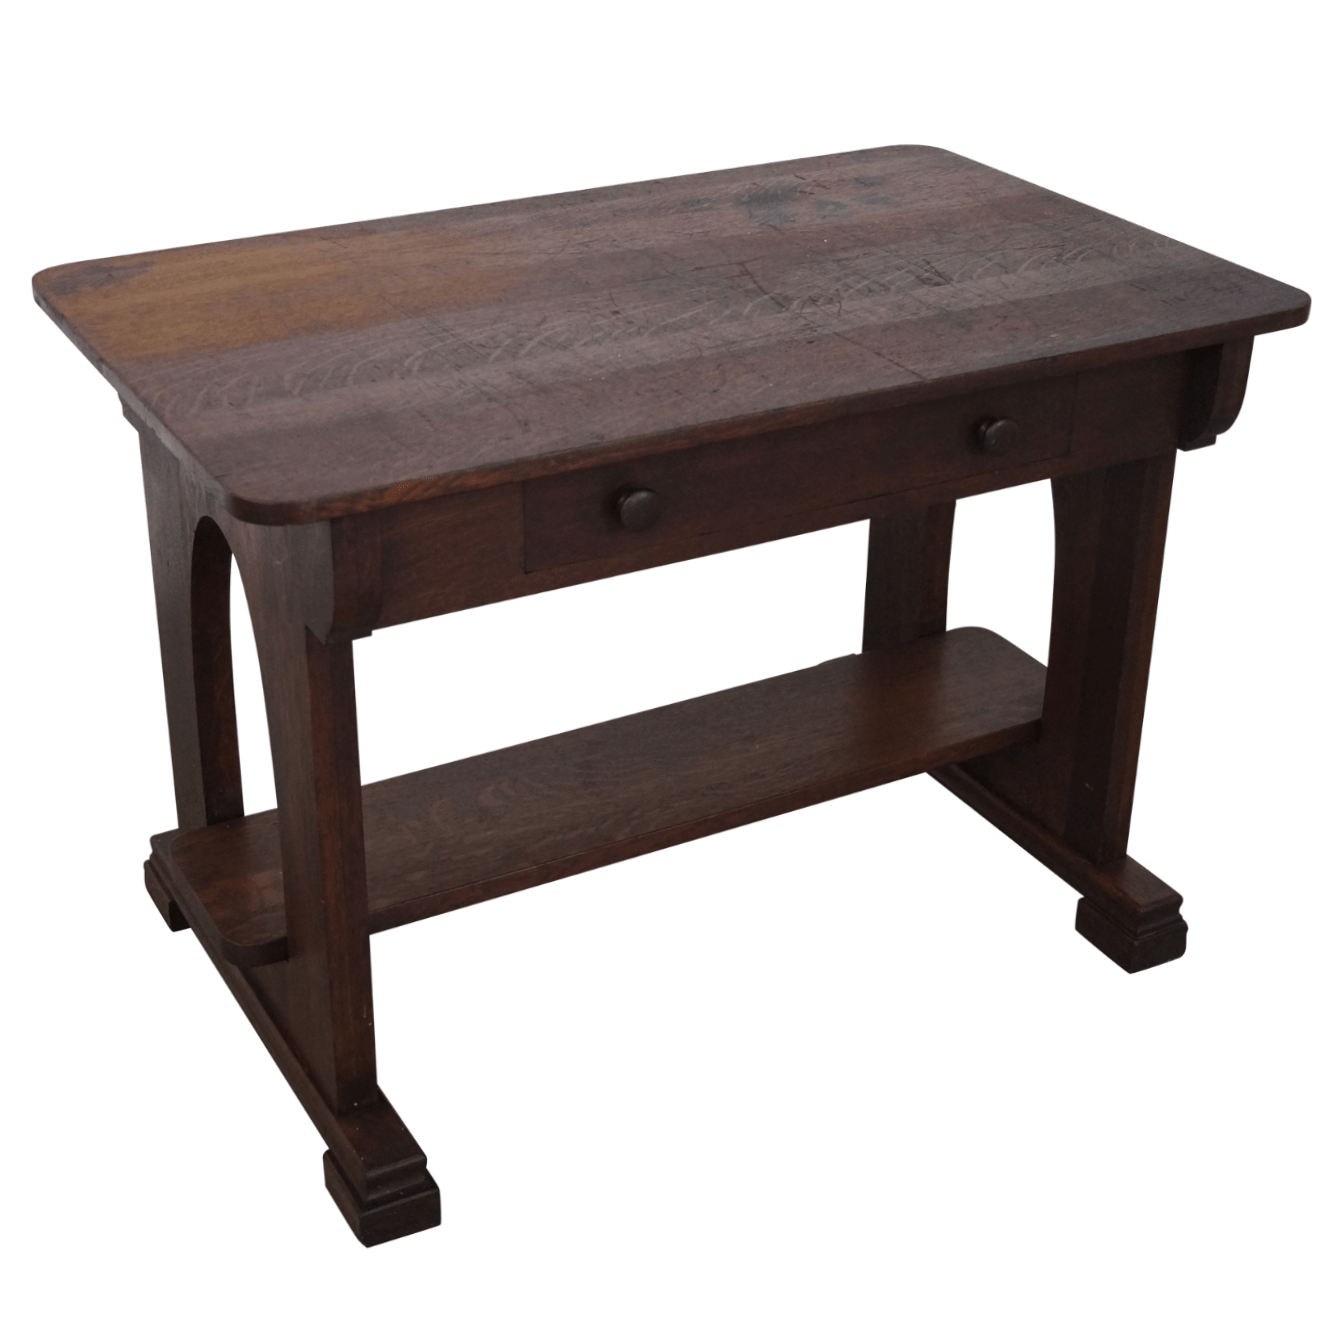 stickley sterling sofa table where to buy cheap sofas in london antique mission oak library chairish